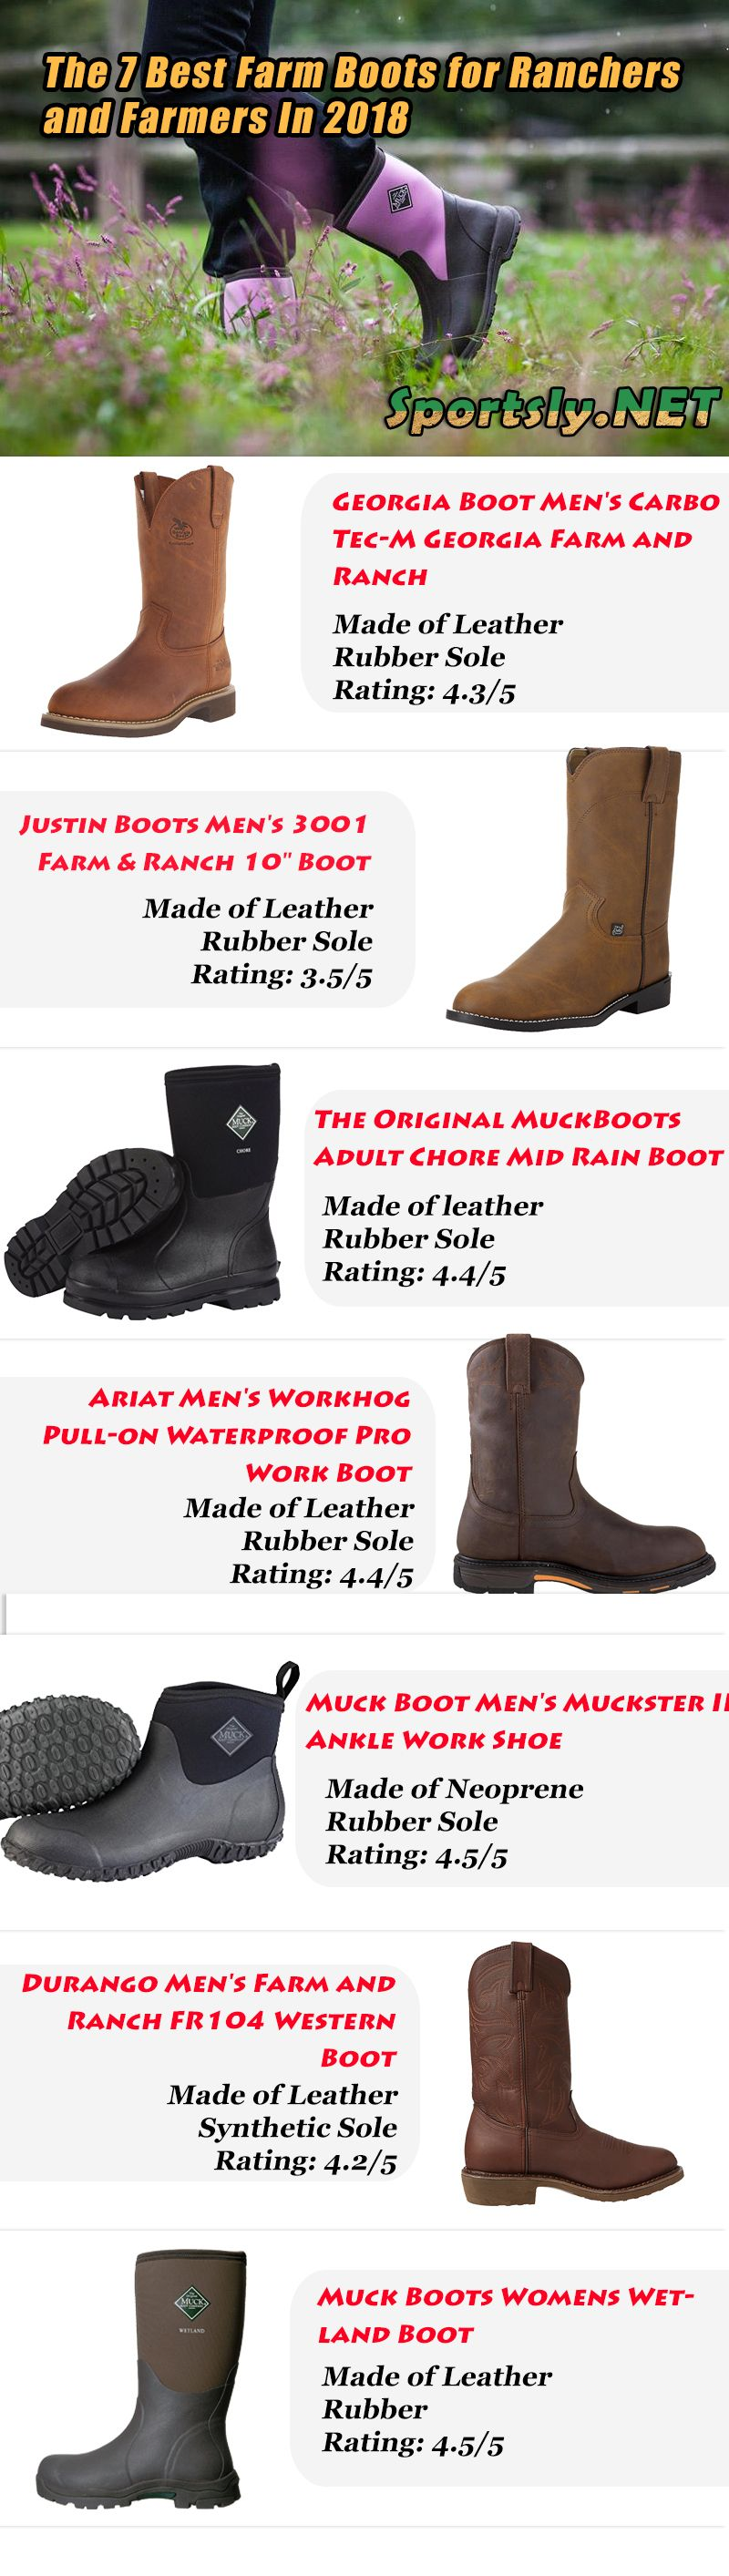 The 7 Best Work Boots for Farmers and